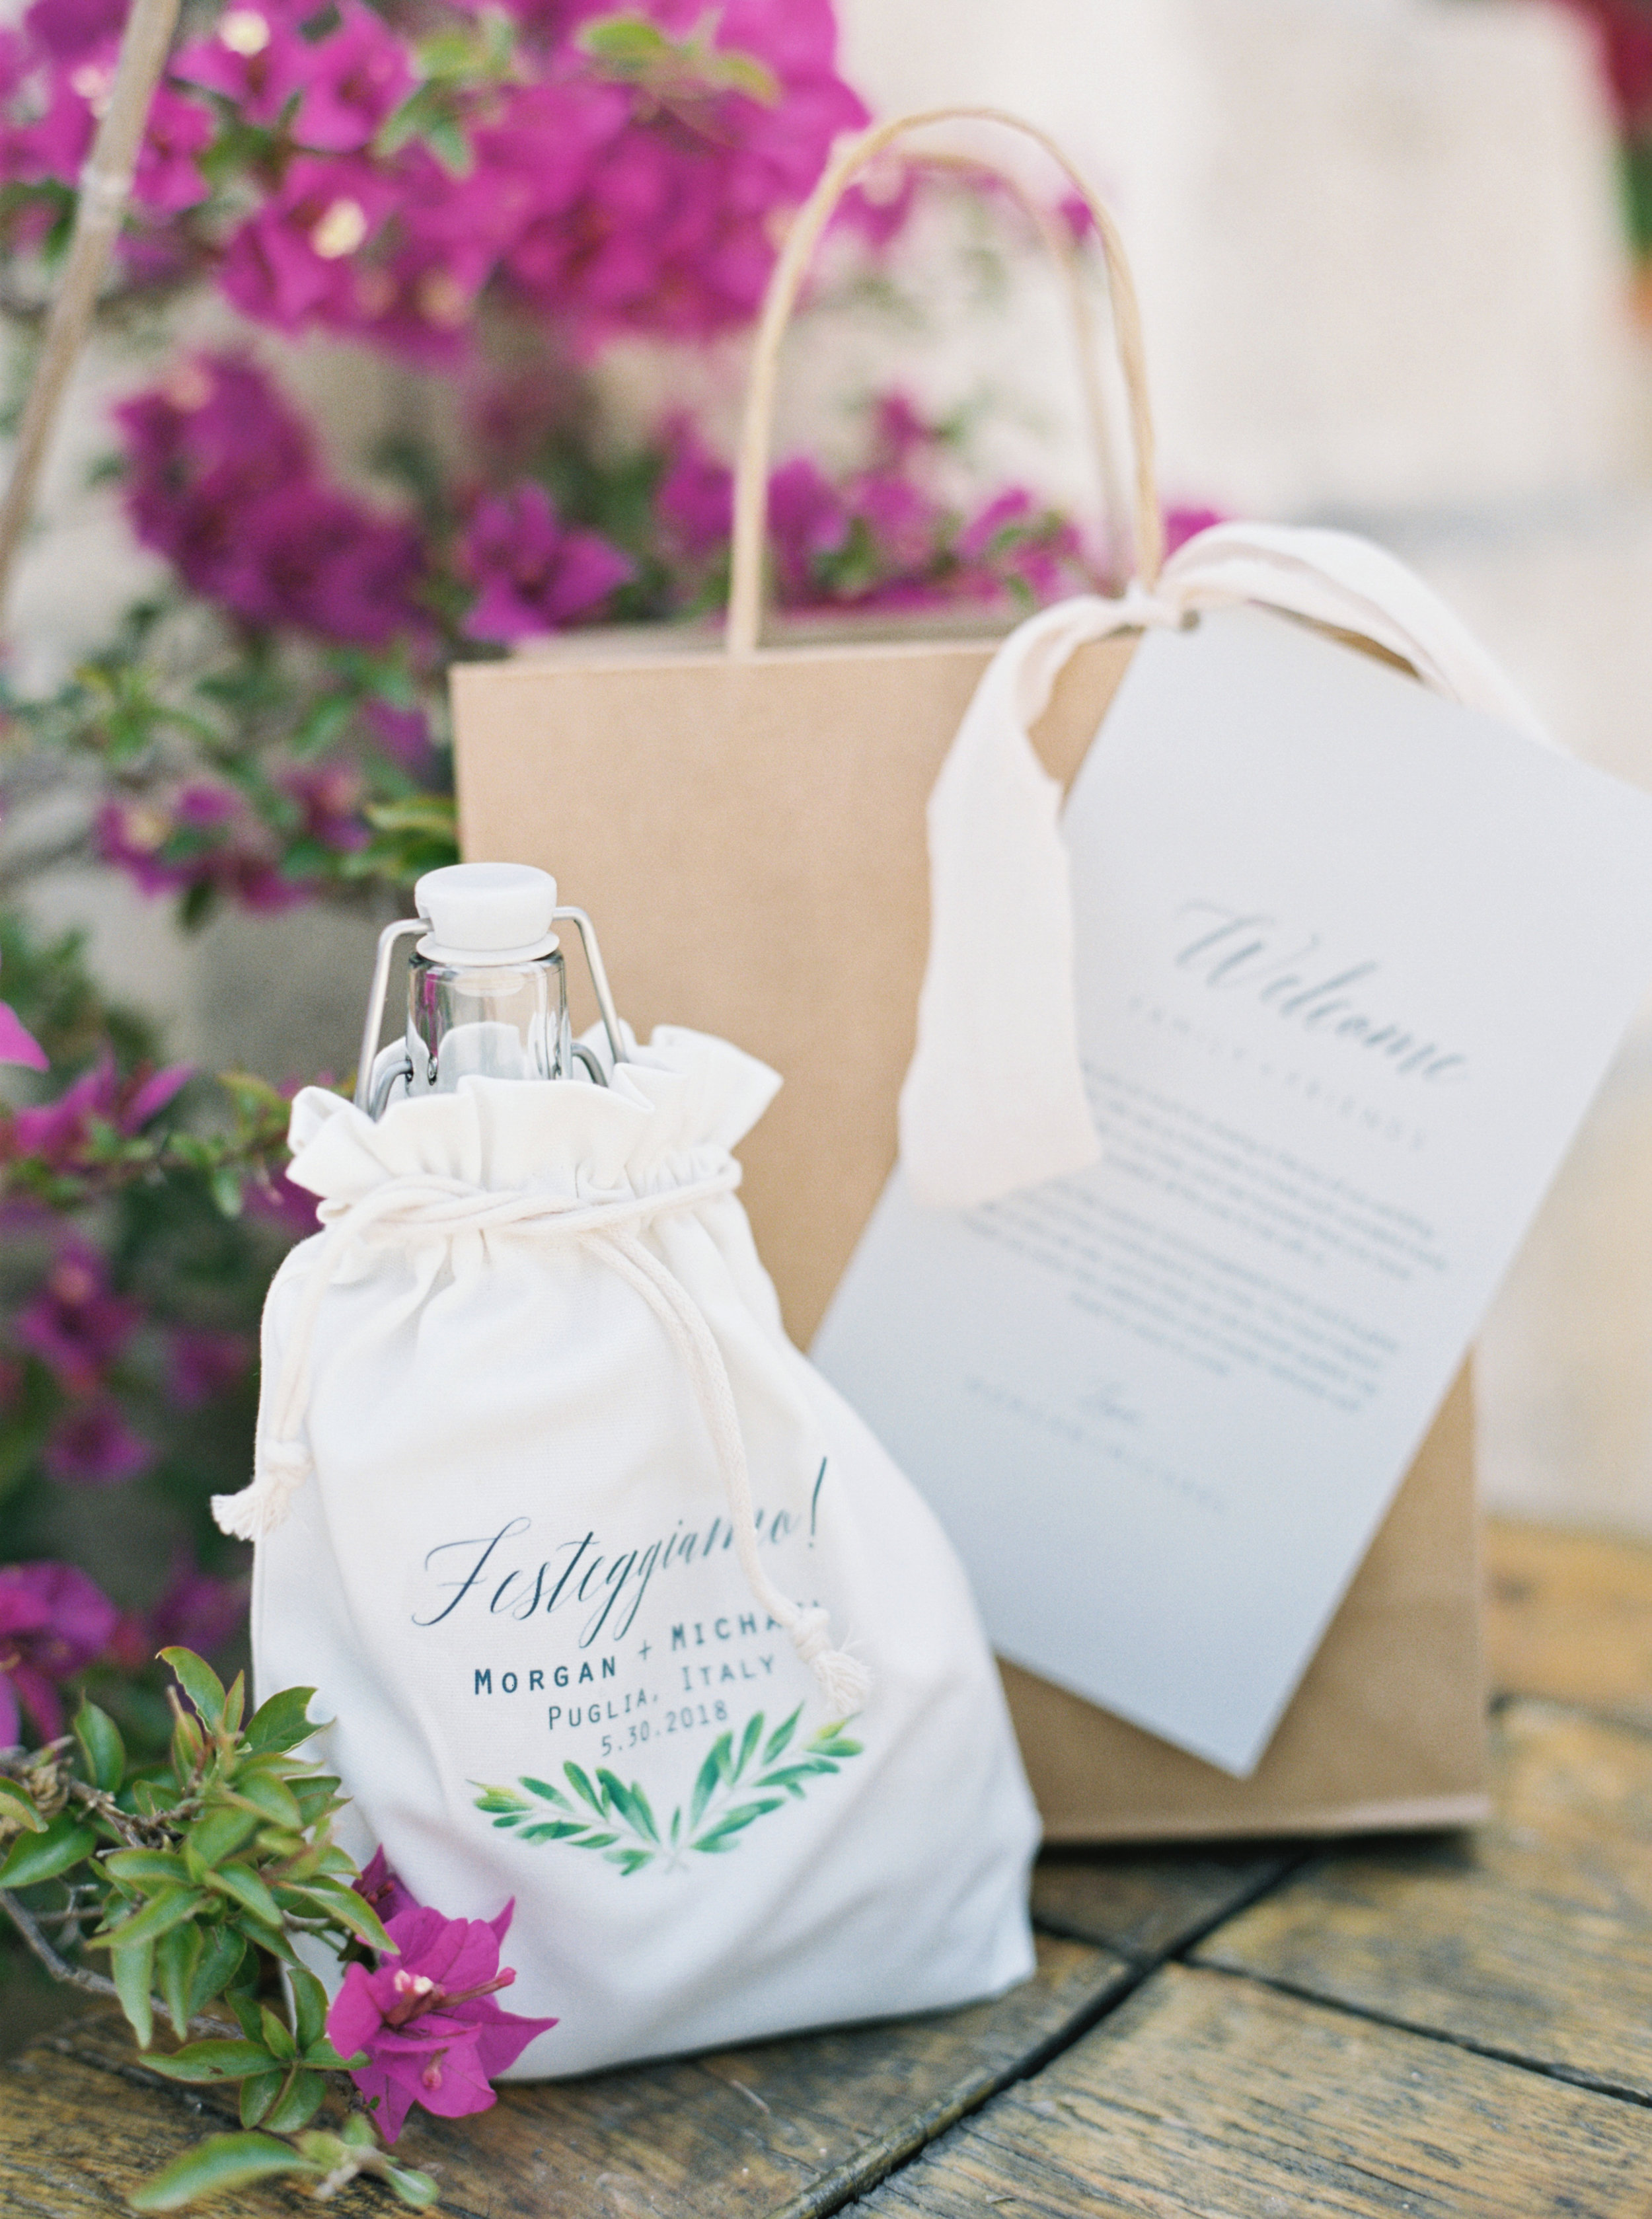 Puglia, Italy destination wedding by Meggie Francisco Events, photographed by Tracy Enoch, video by Innar Hunt Films